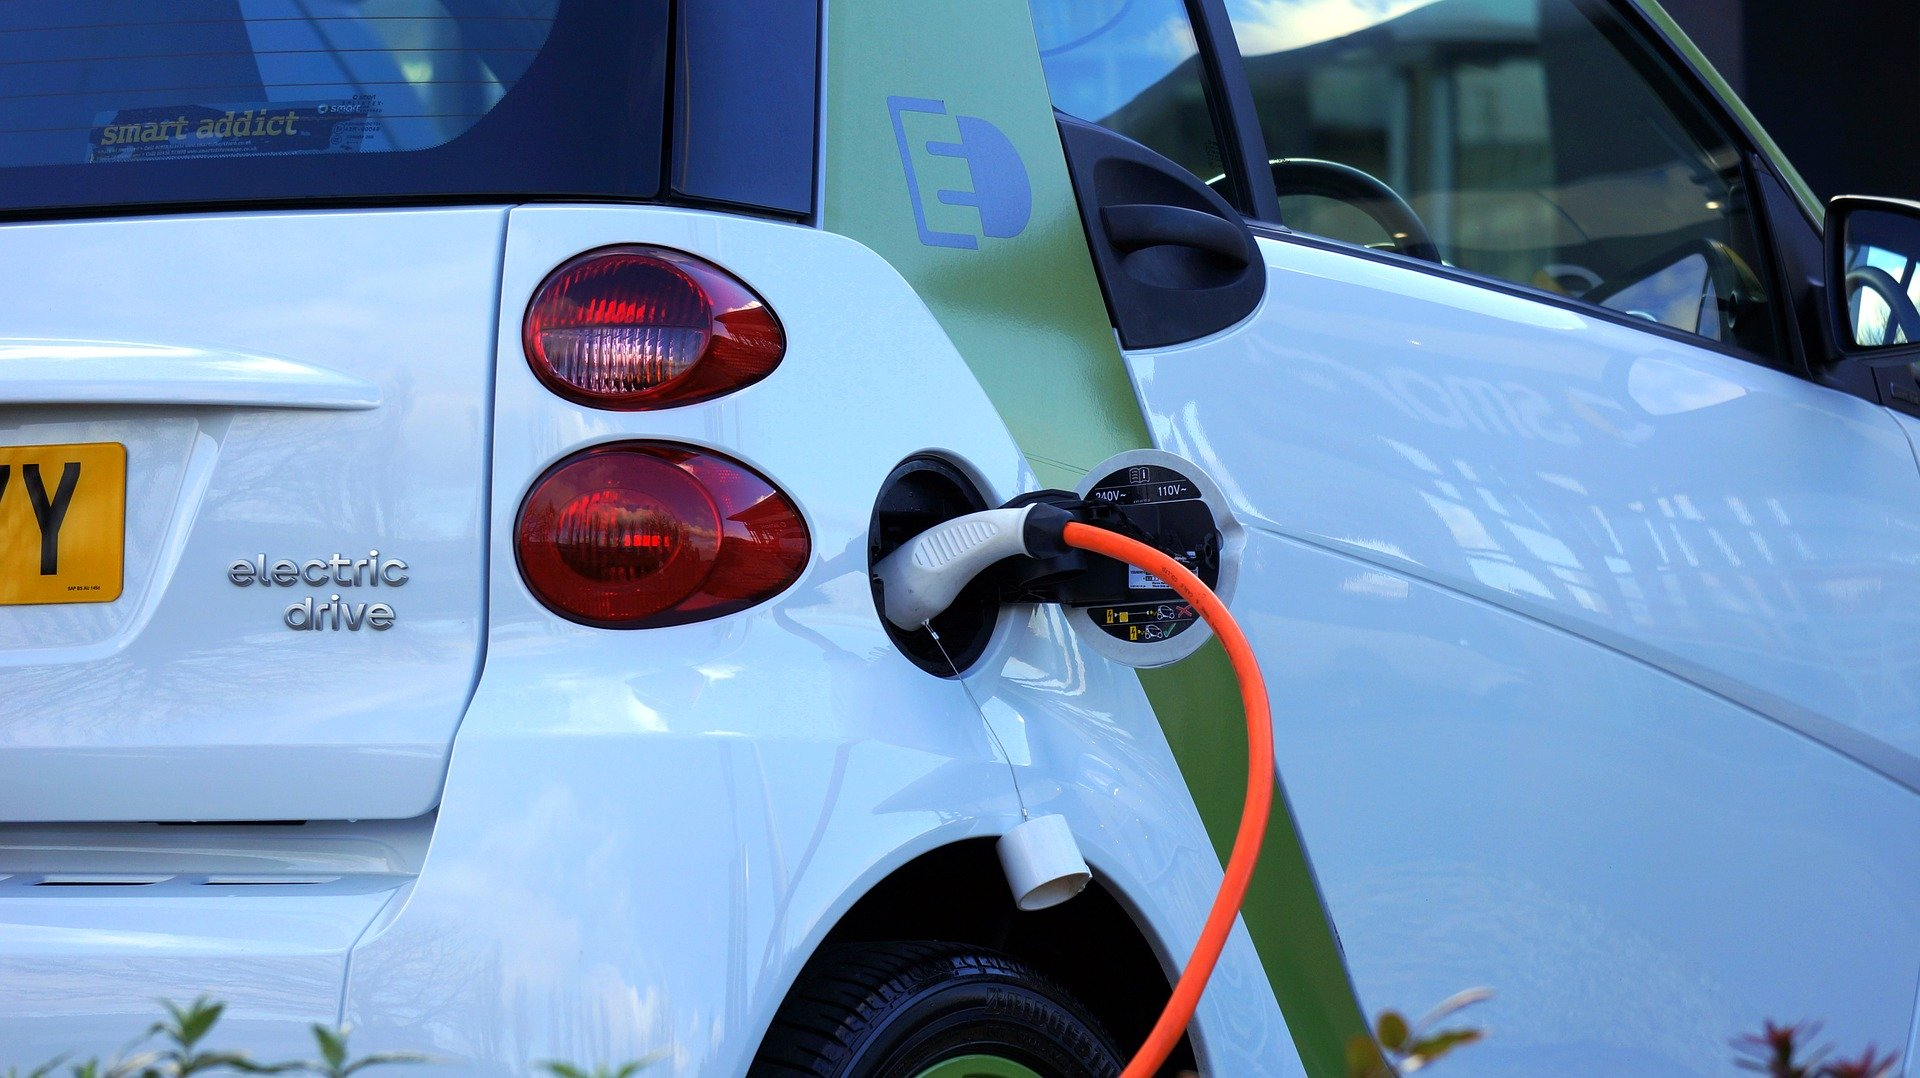 People who care about the environment are driving electric cars